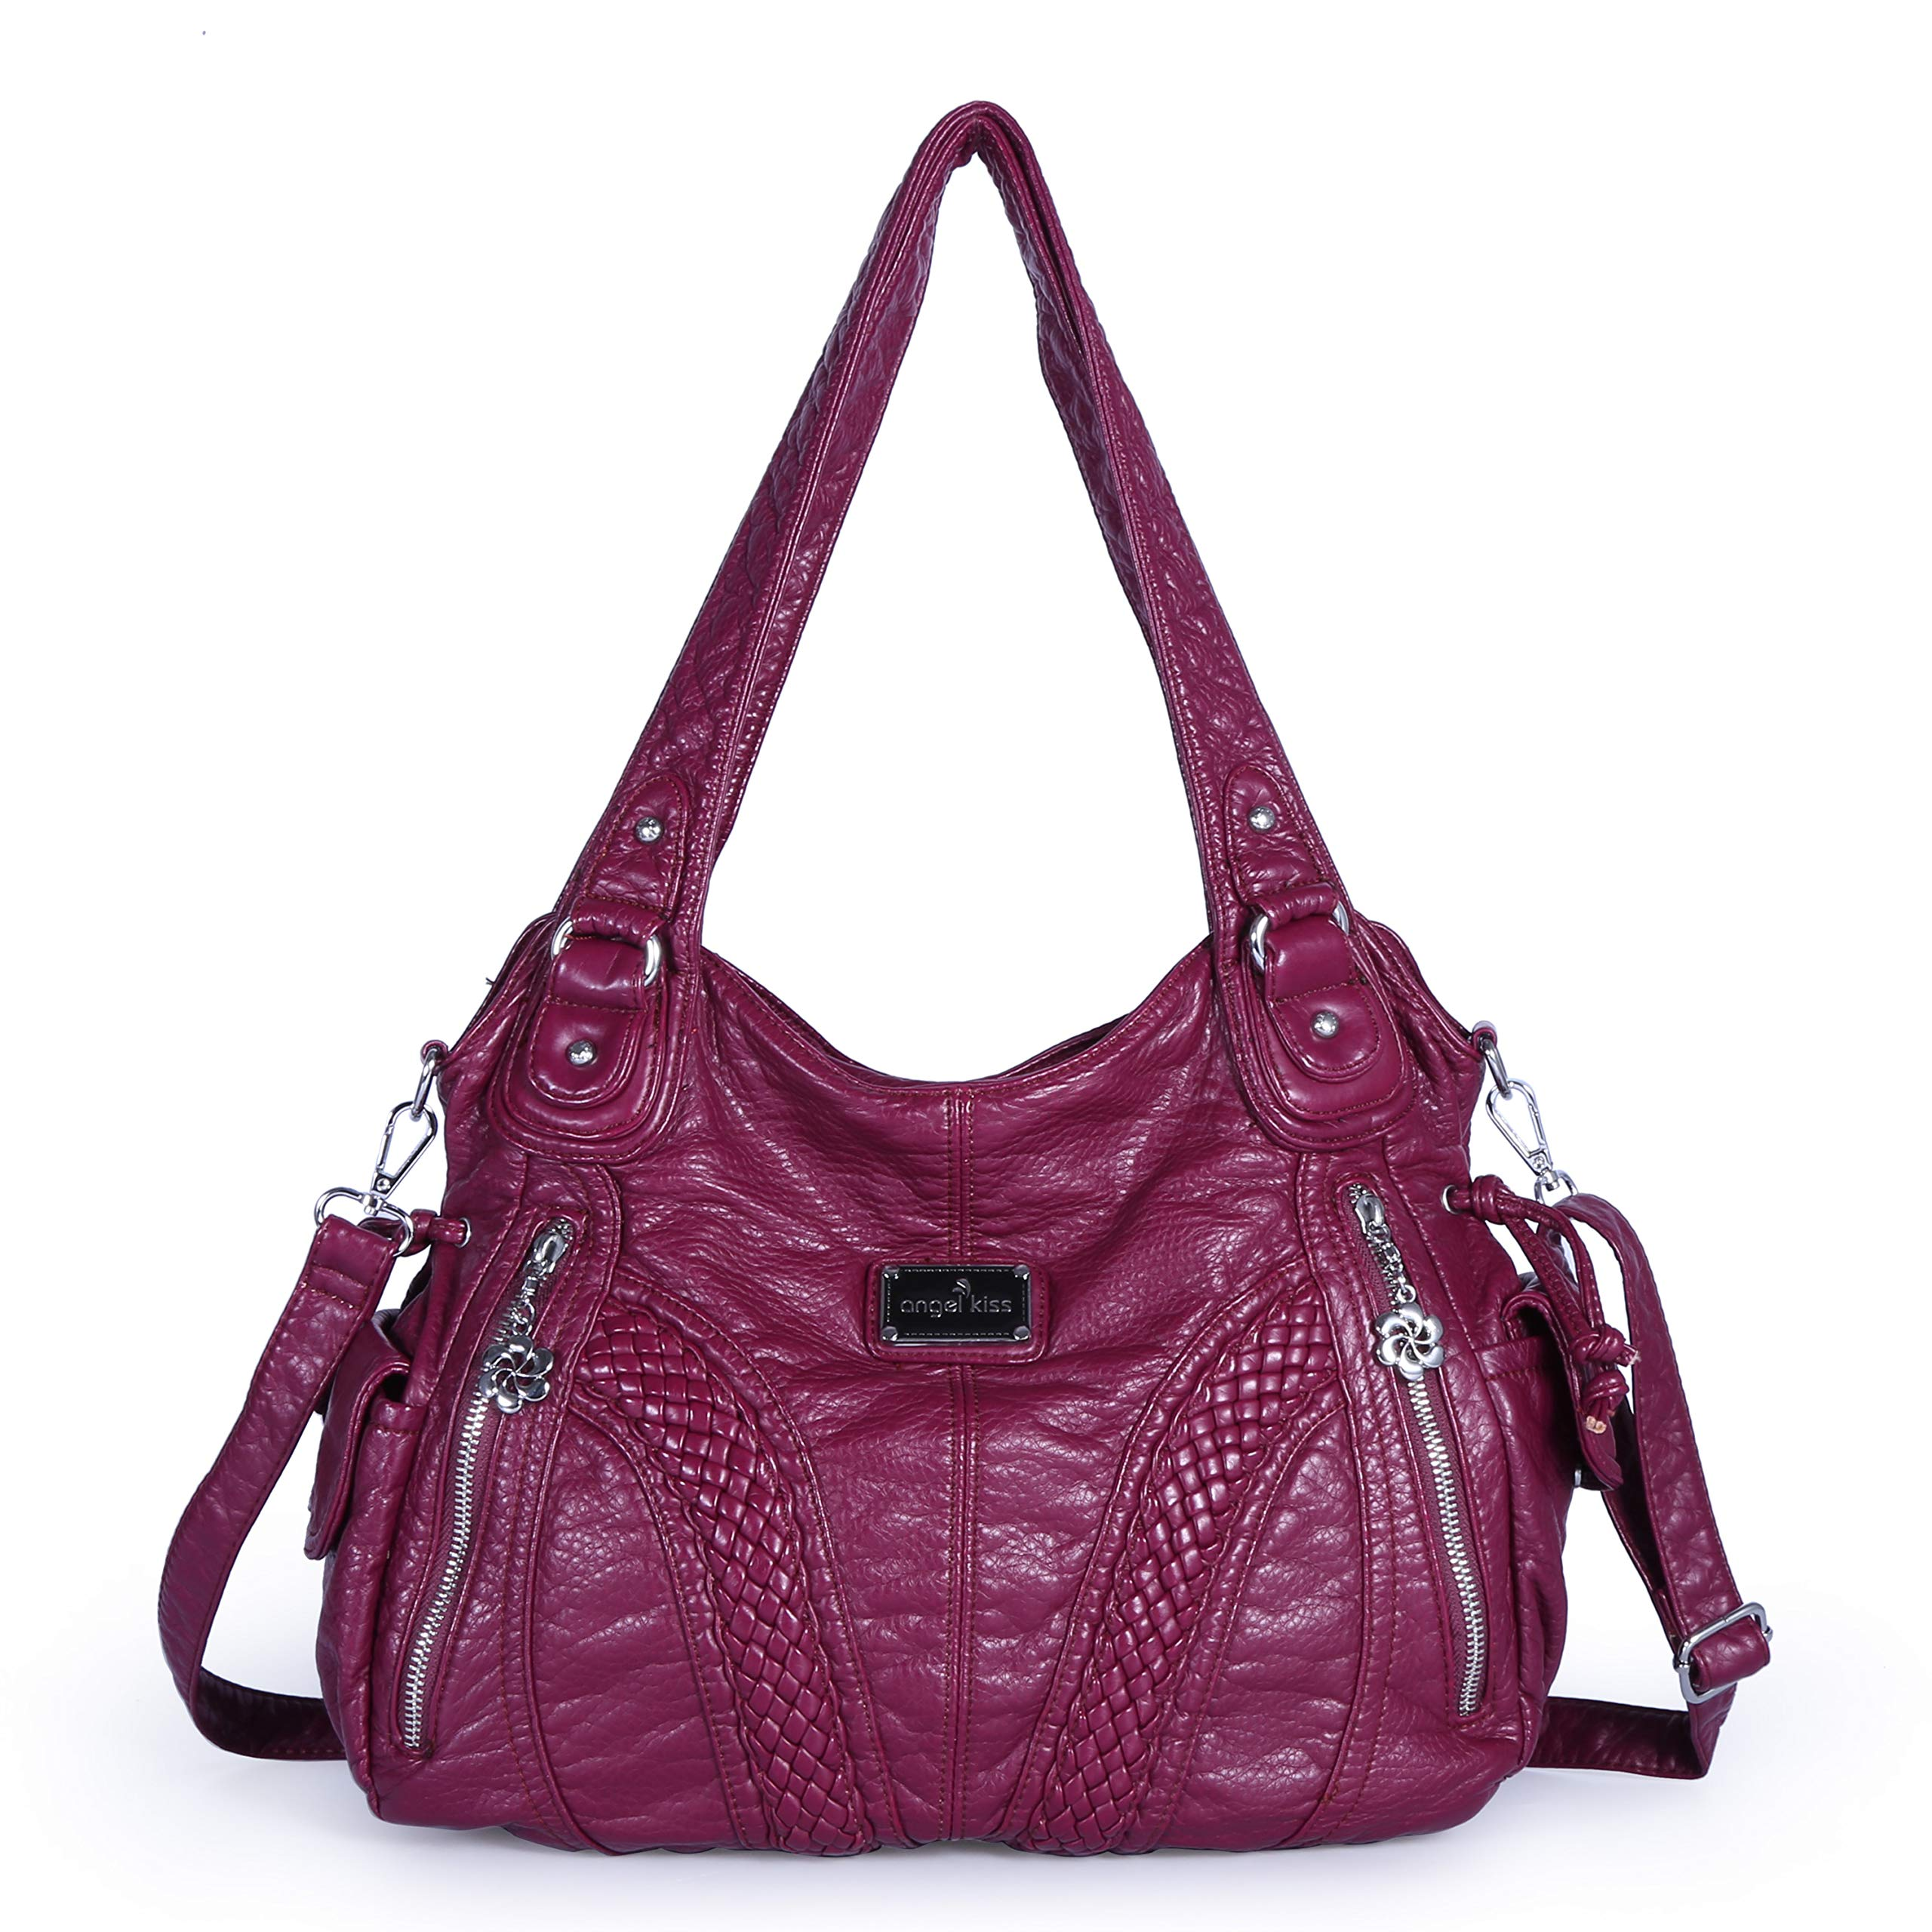 fc3c0aa885 Galleon - Angelkiss Women Top Handle Satchel Handbags Shoulder Bag  Messenger Tote Washed Leather Purses Bag (P-Red)